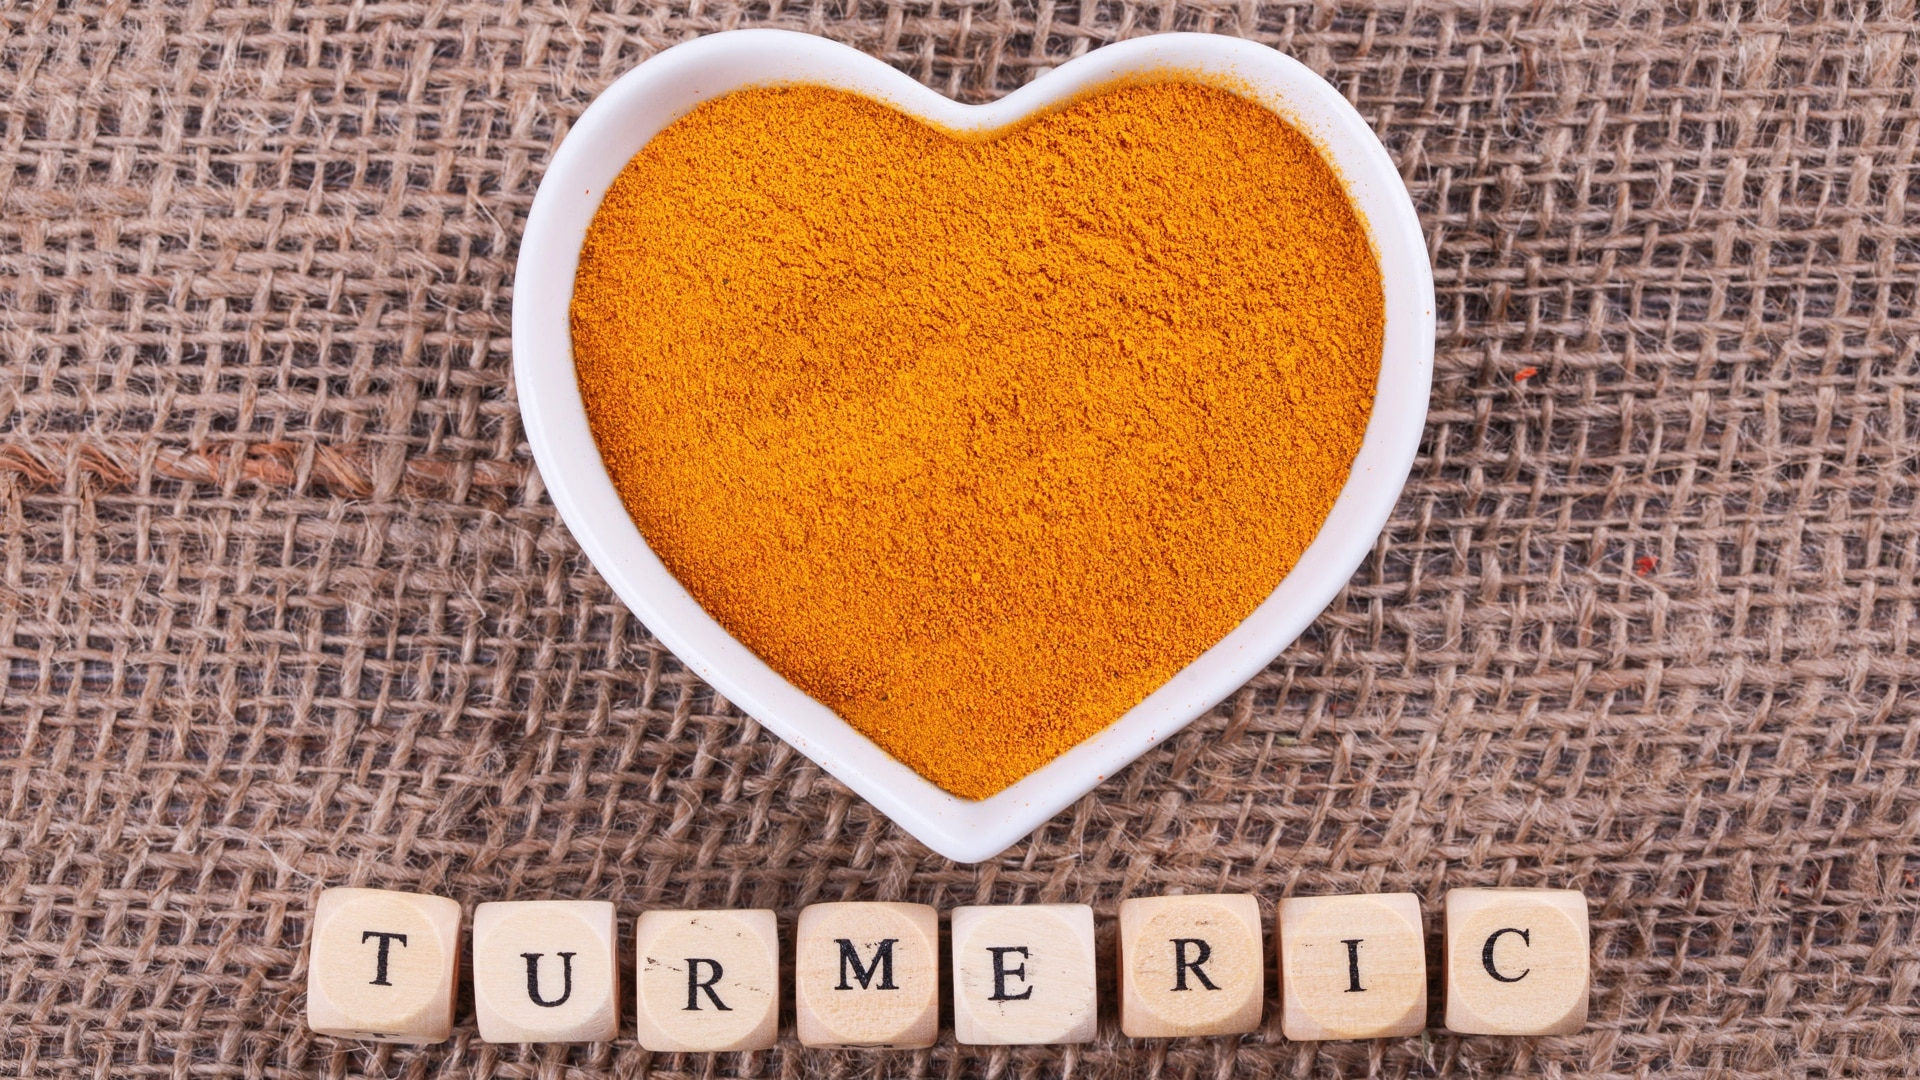 Heart of Gold: Turmeric vs. Exercise